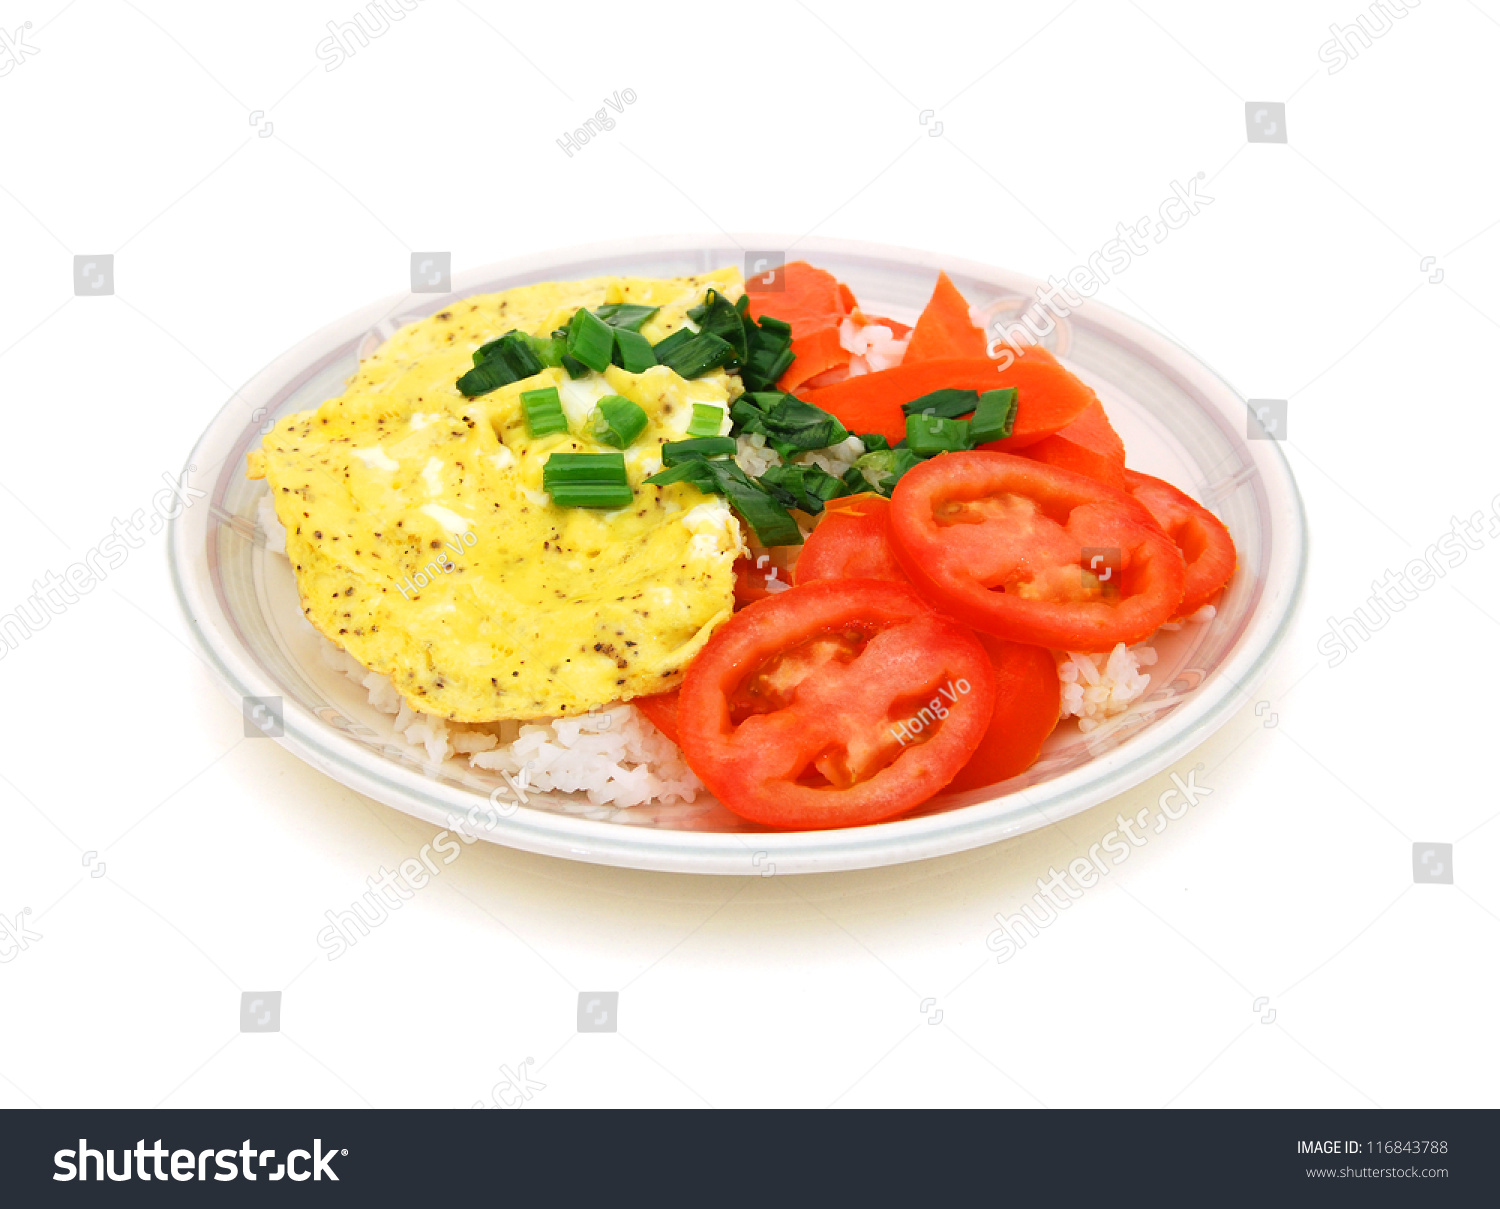 how to cook egg omelette rice